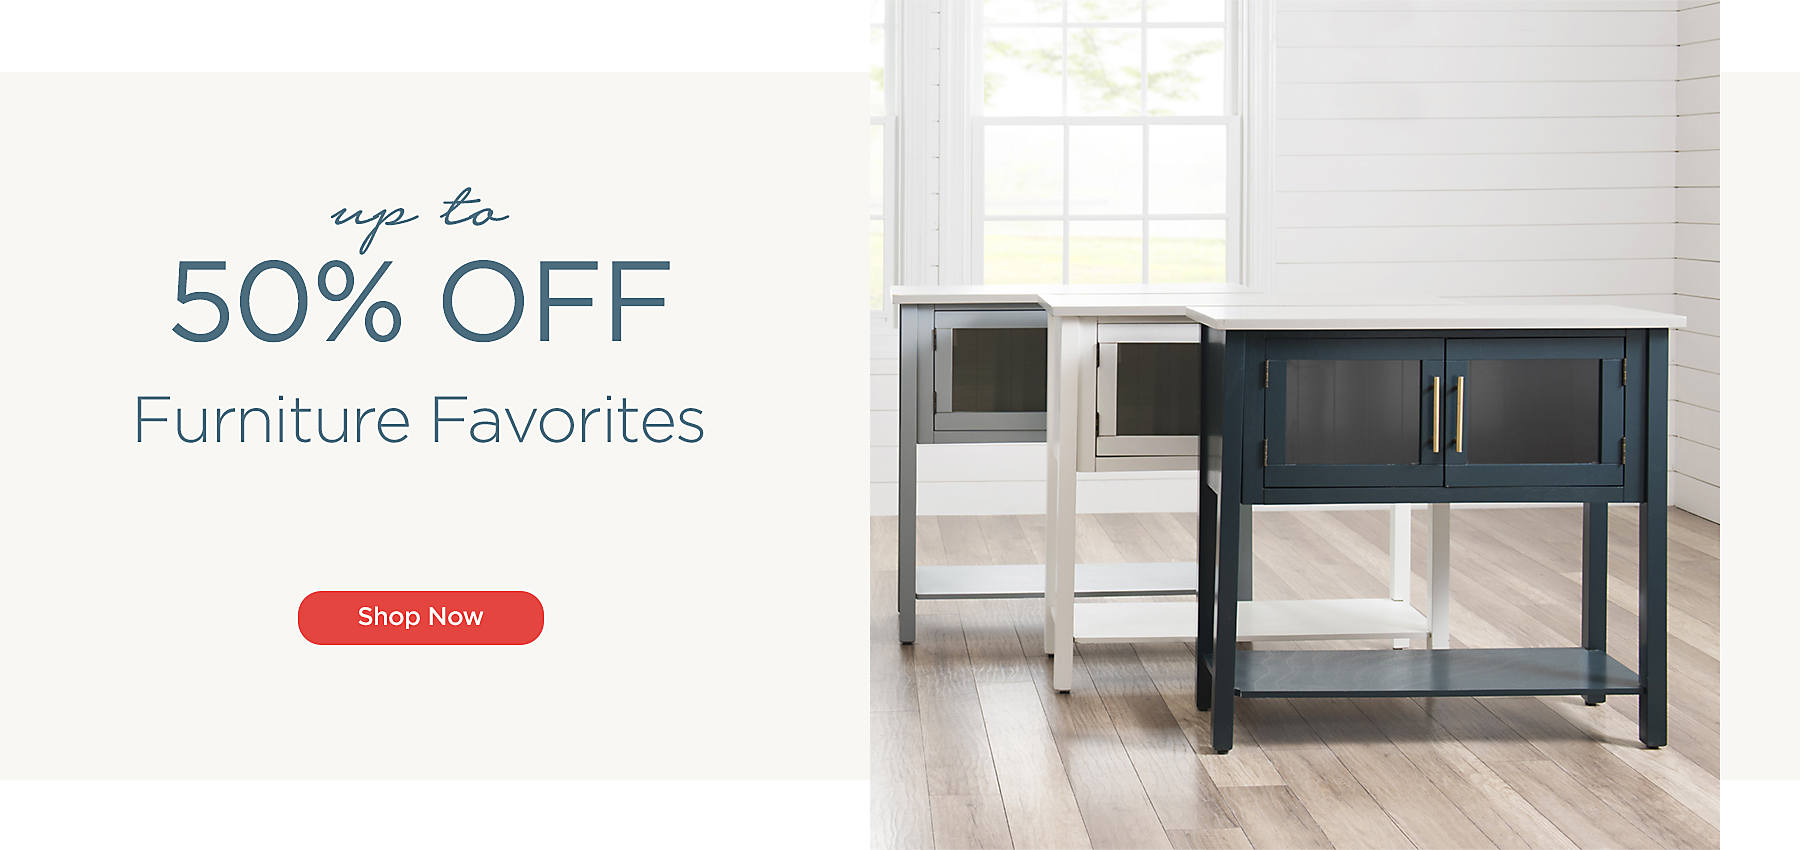 Up to 45% Off Furniture Favorites - Shop Now